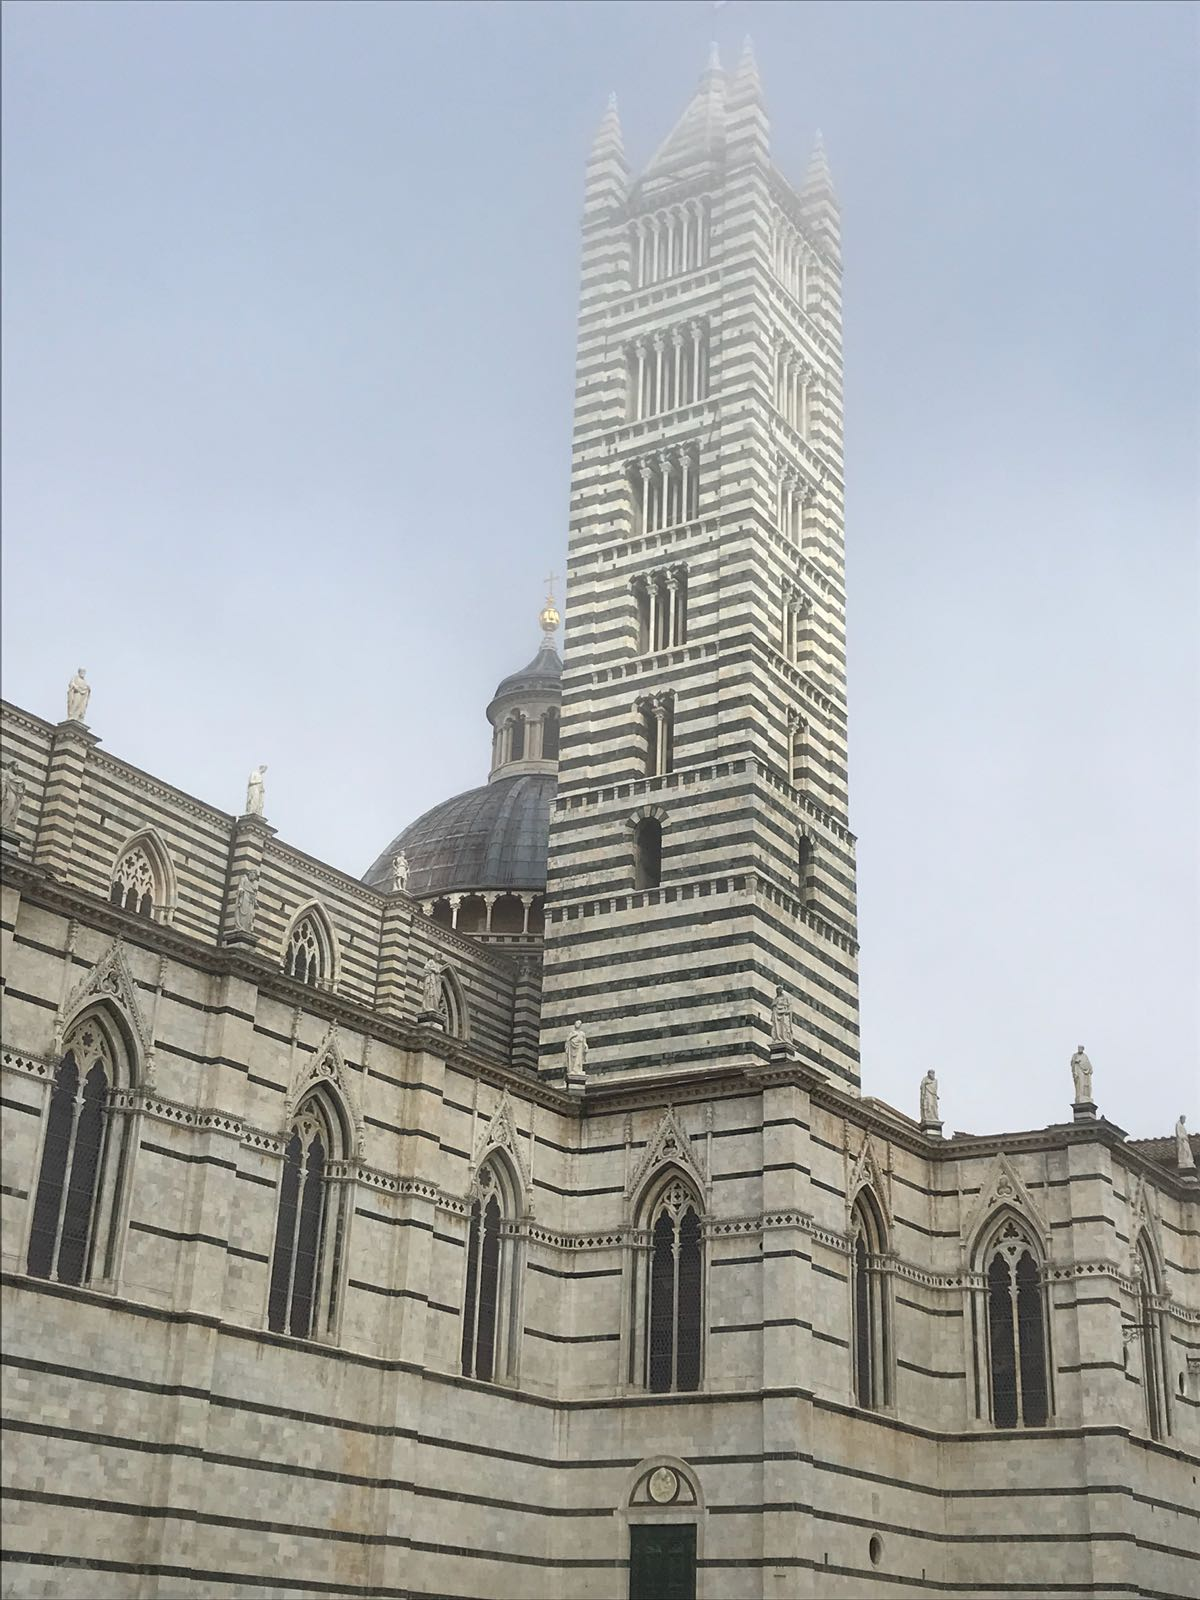 Siena Cathedral tower with the top disappearing into the mist